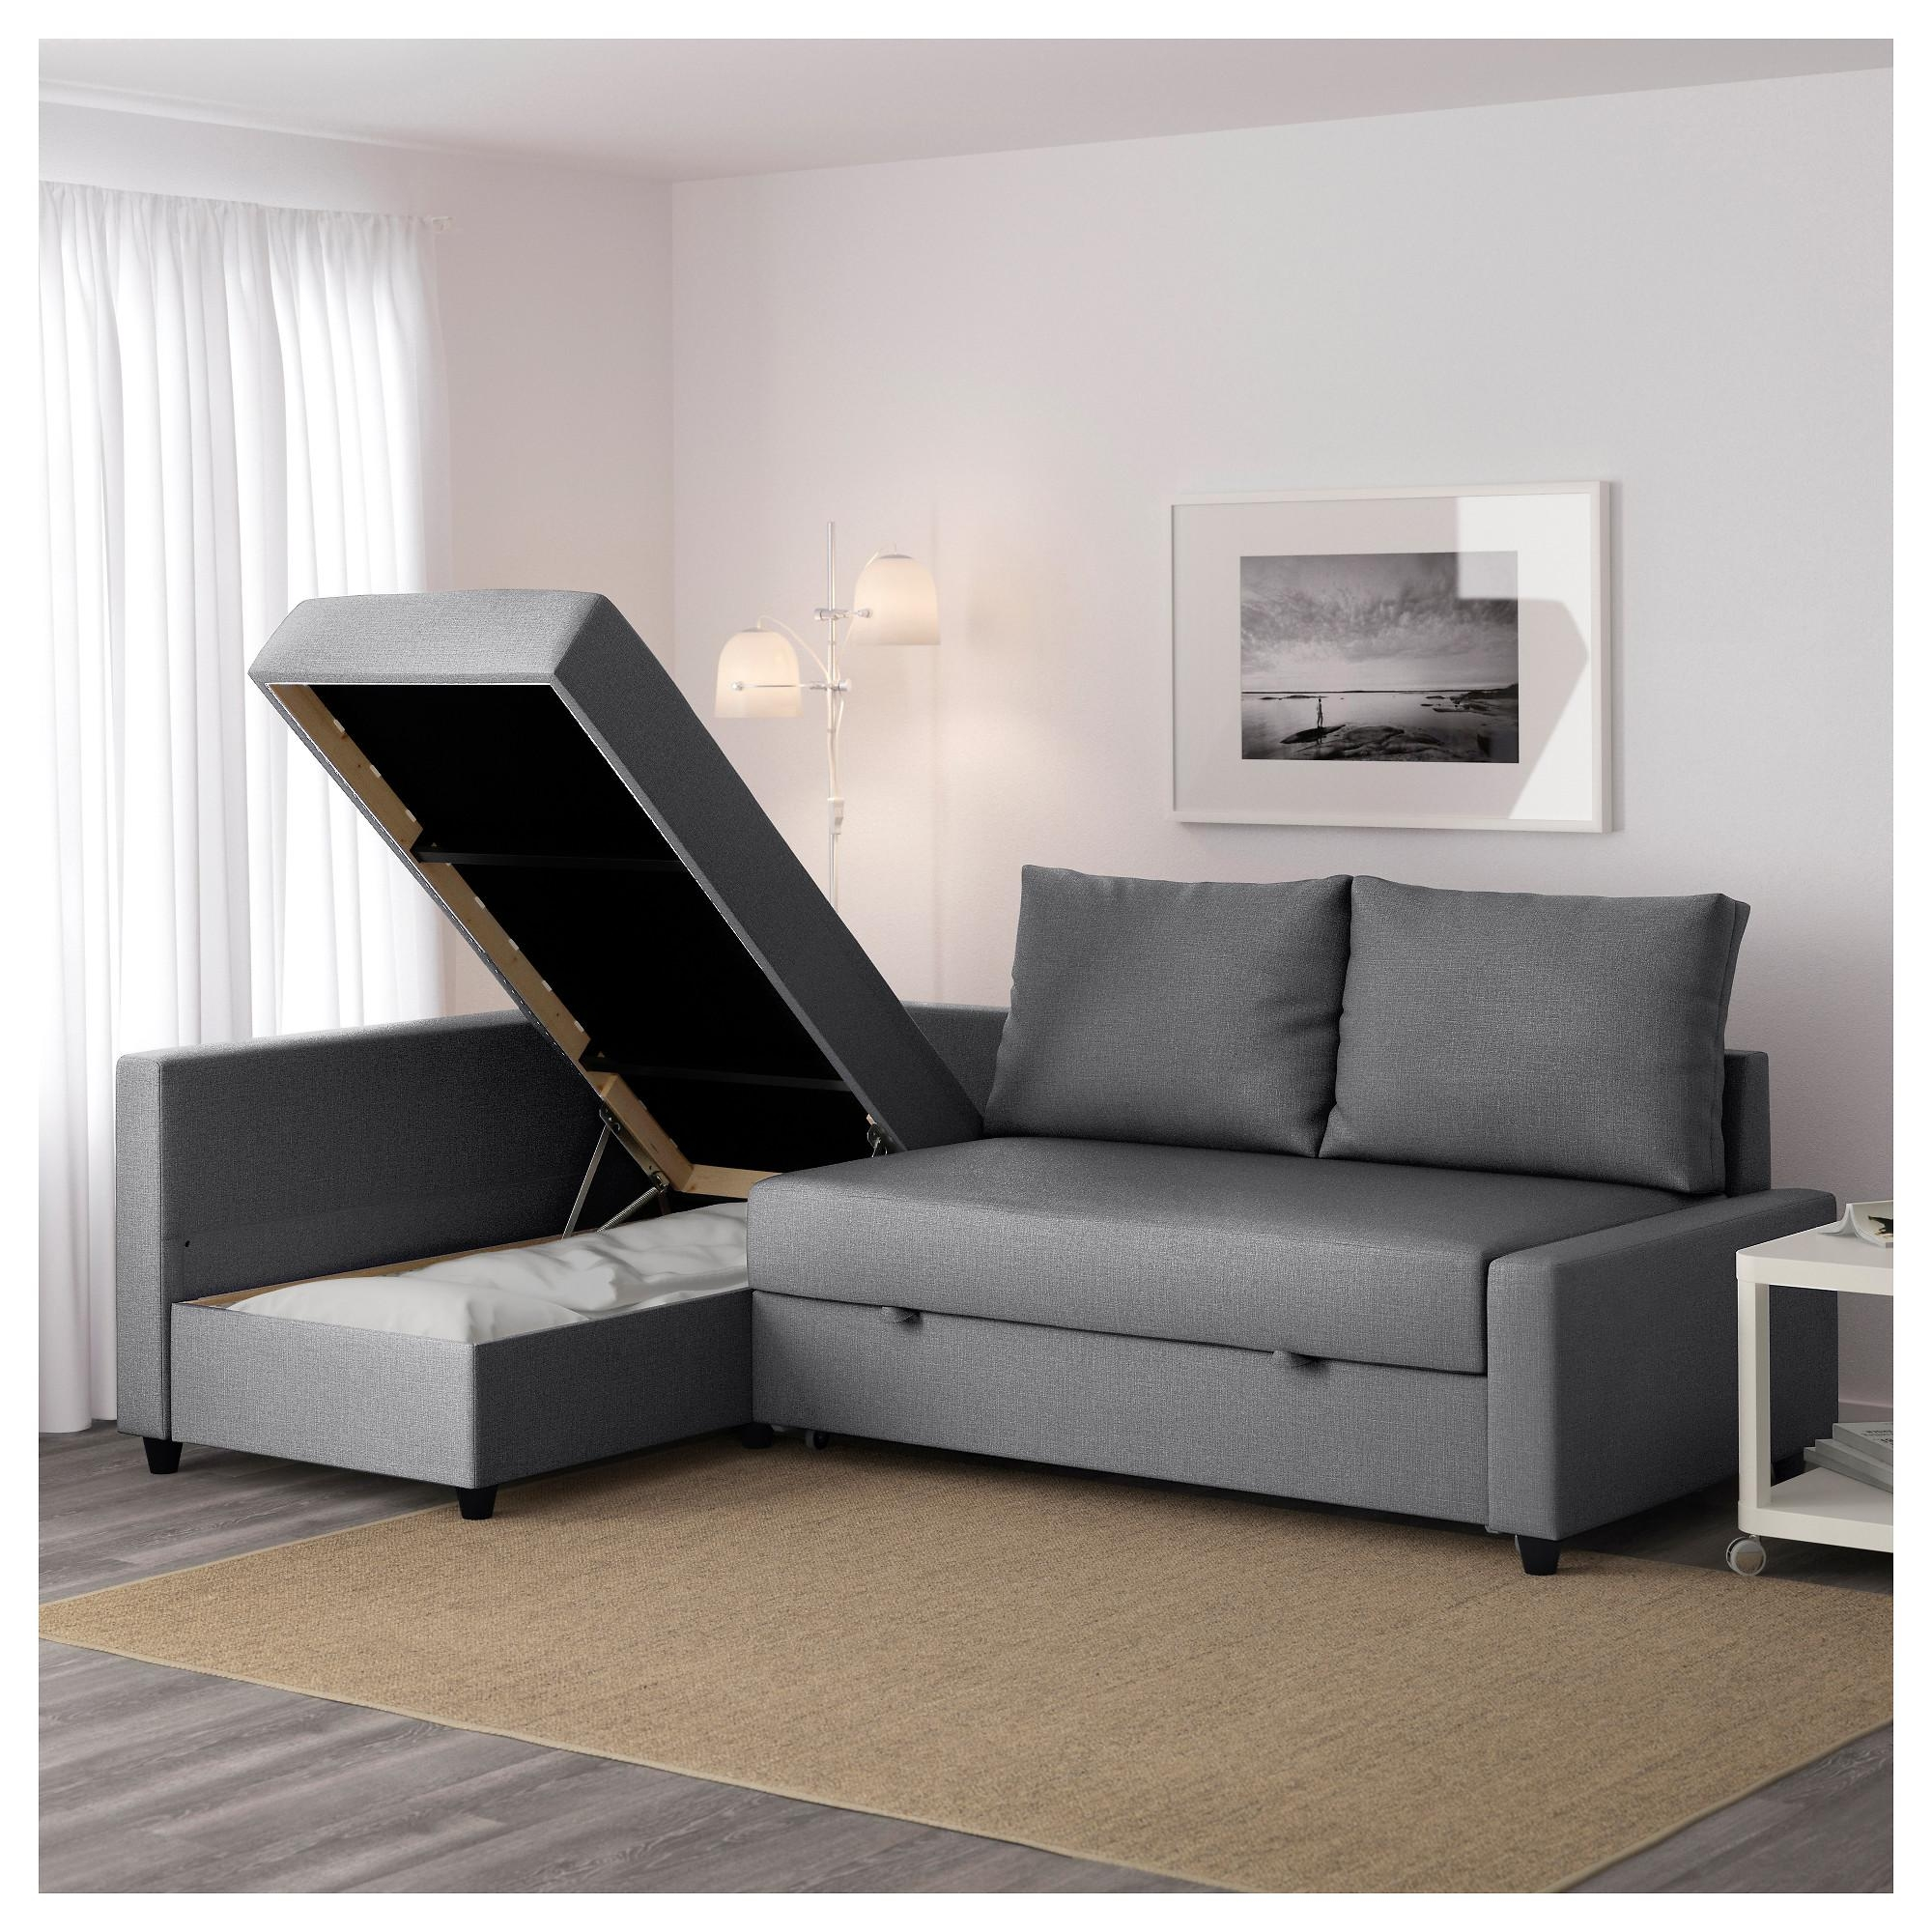 Sofas Center : Corner Sofa Beds Uk Cheap For Small Rooms Ikea With For Cheap Corner Sofas (View 20 of 20)